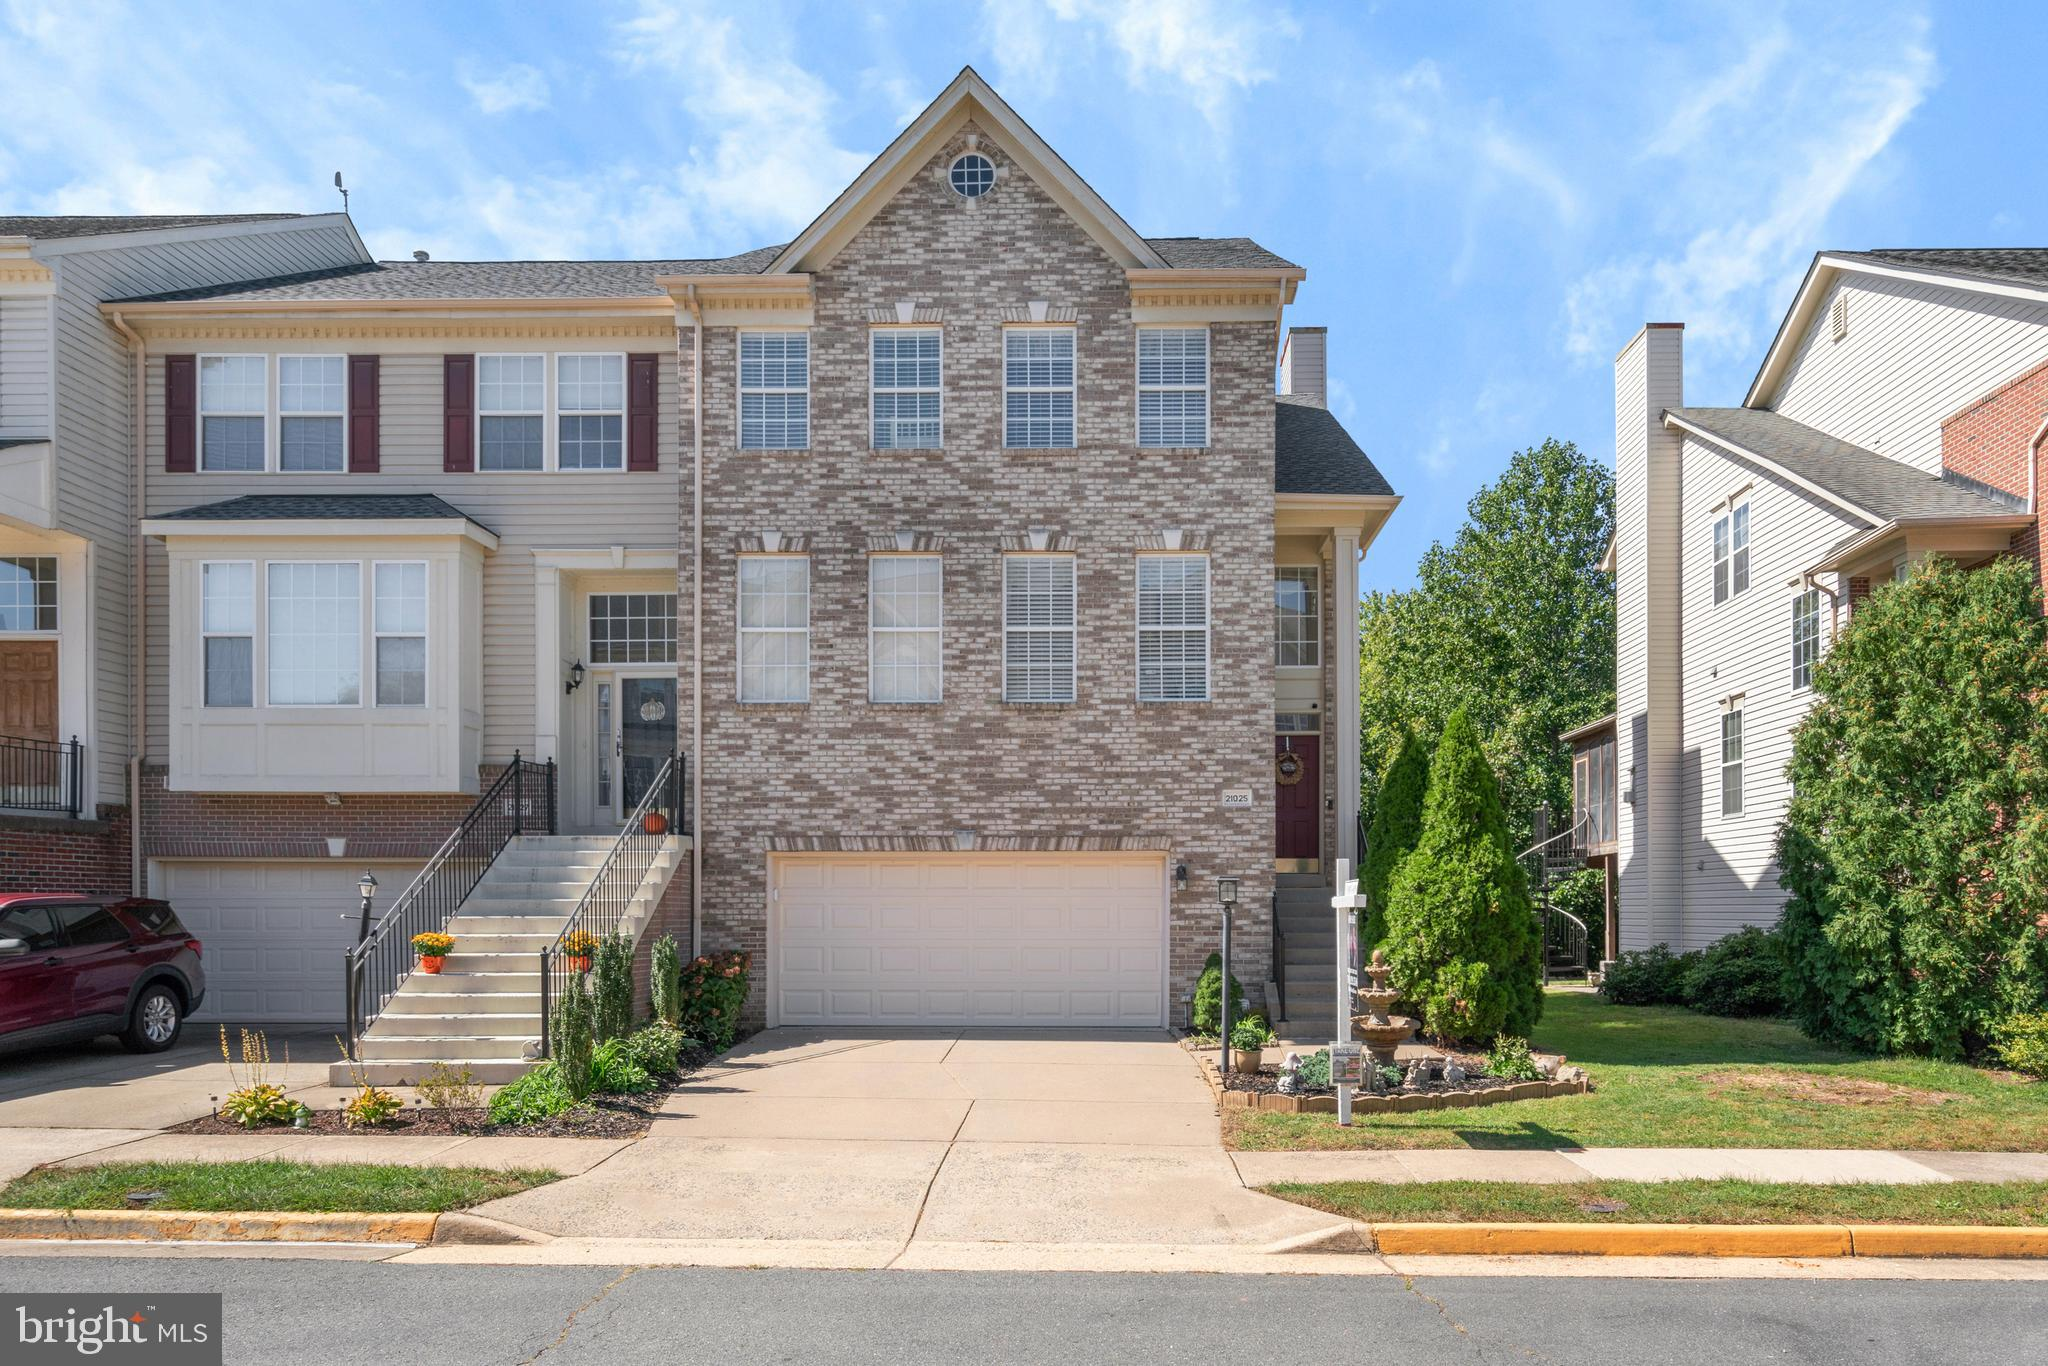 NEIGHBOR OPEN HOUSE, FRIDAY, SEPT 25TH, 5:00PM - 7:00PM - PUBLIC OPEN HOUSE, SUNDAY, SEPT 27TH, 11:0